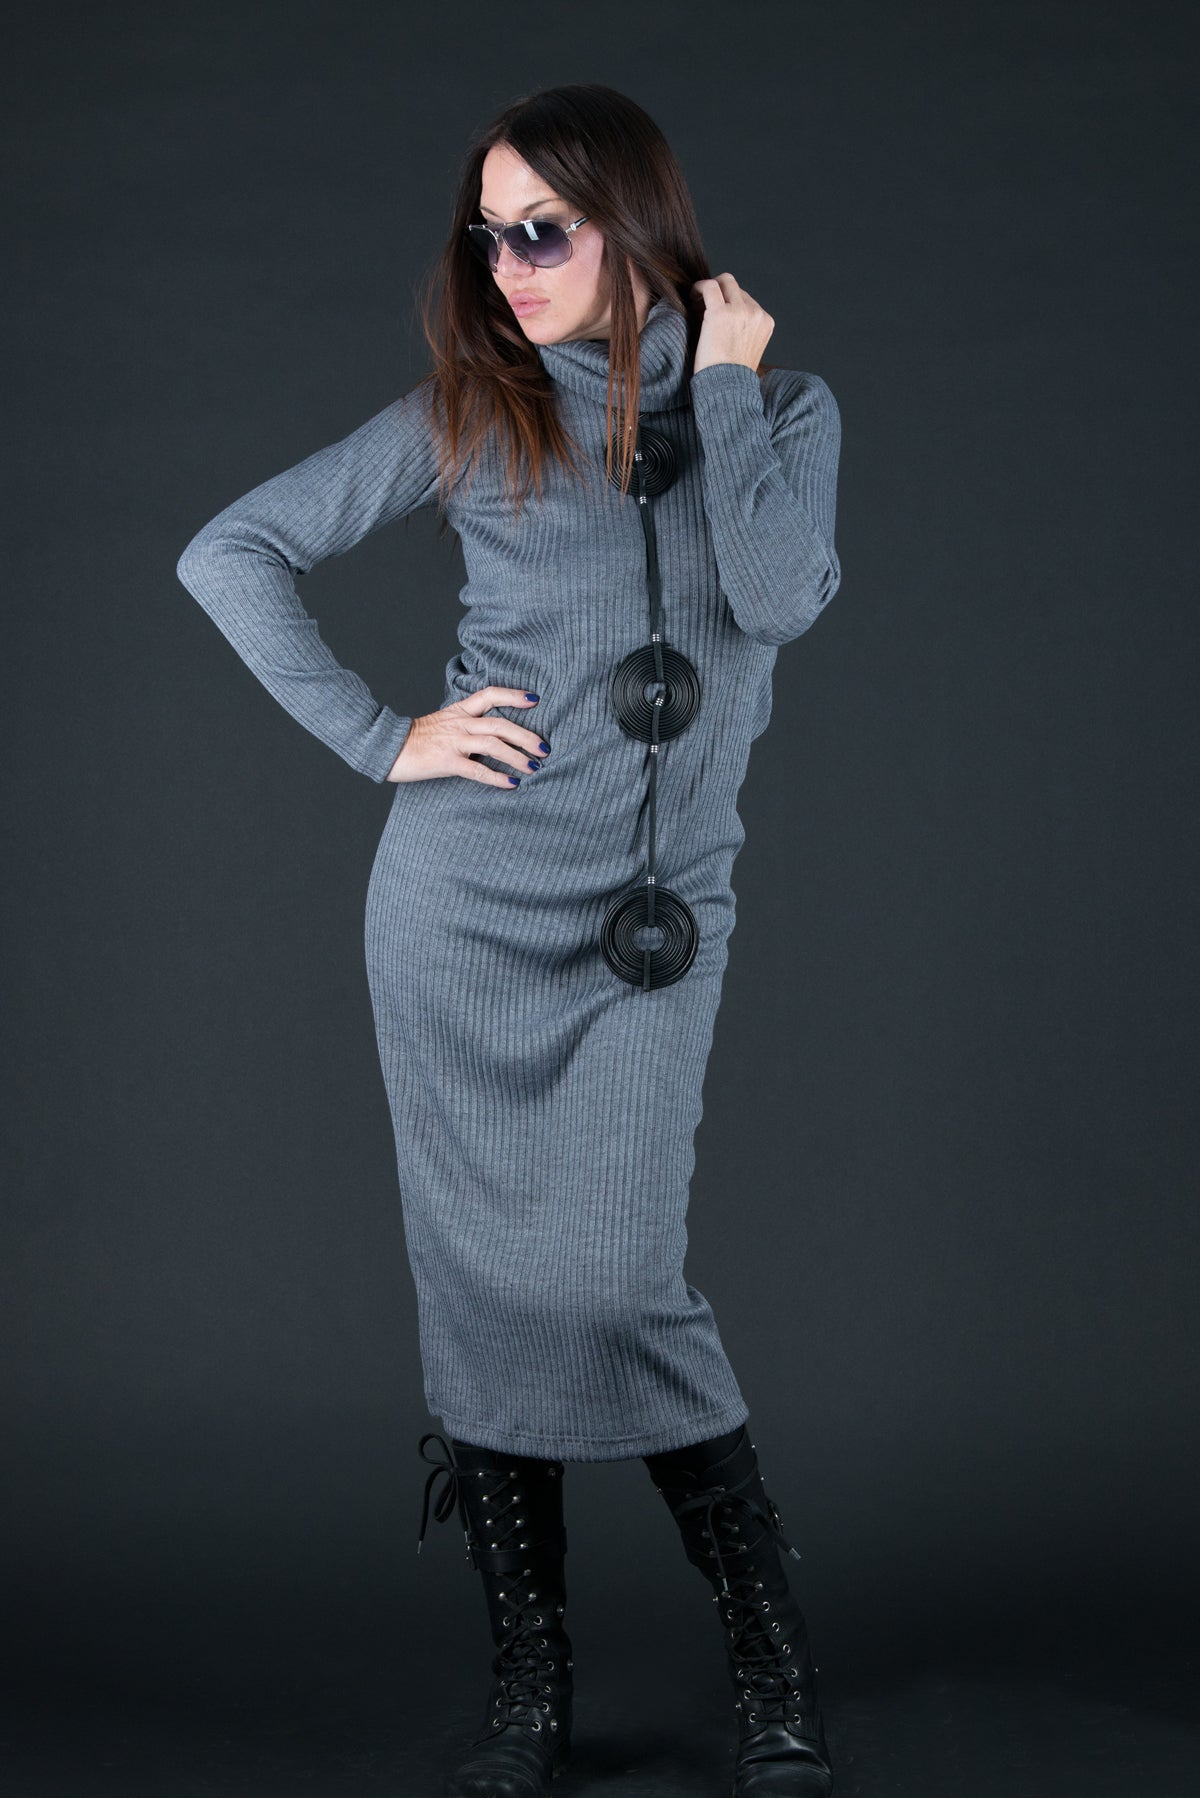 Winter Autumn Grey cotton knitting dress, Dresses & Maxi Dresses